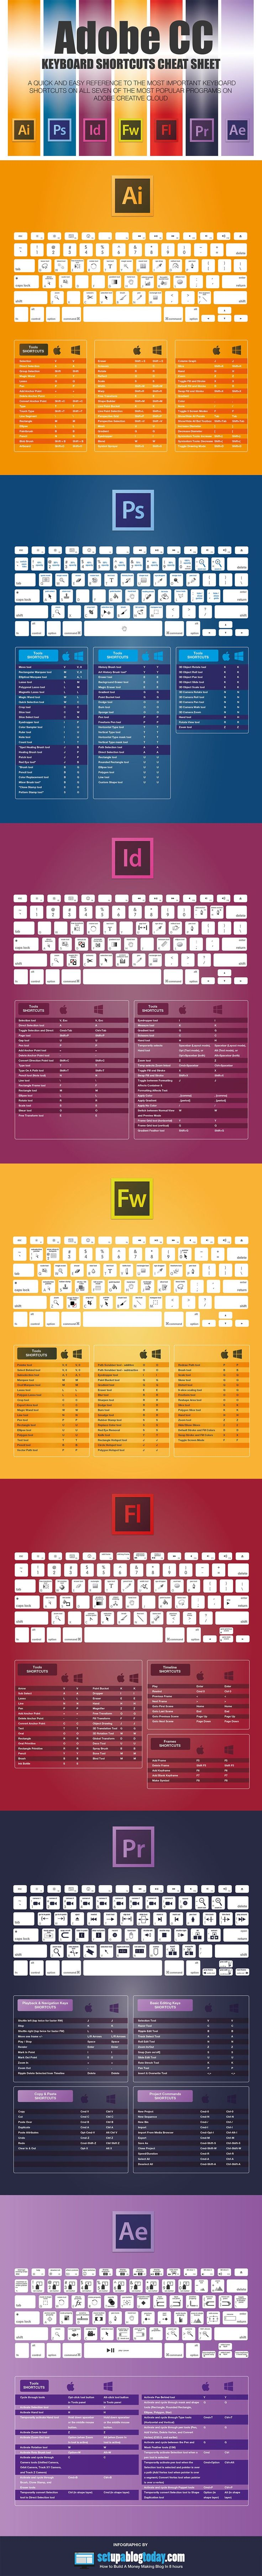 Adobe CC Keyboard Shortcuts Cheat Sheet - @visualistan A website should not just draw attention. The role of a website is to attract and engage the user as well as communicate your brand and raise awareness about a product or service.  We offer professional SEO services that help websites increase their organic search score drastically in order to compete for the highest rankings — even when it comes to highly competitive keywords.